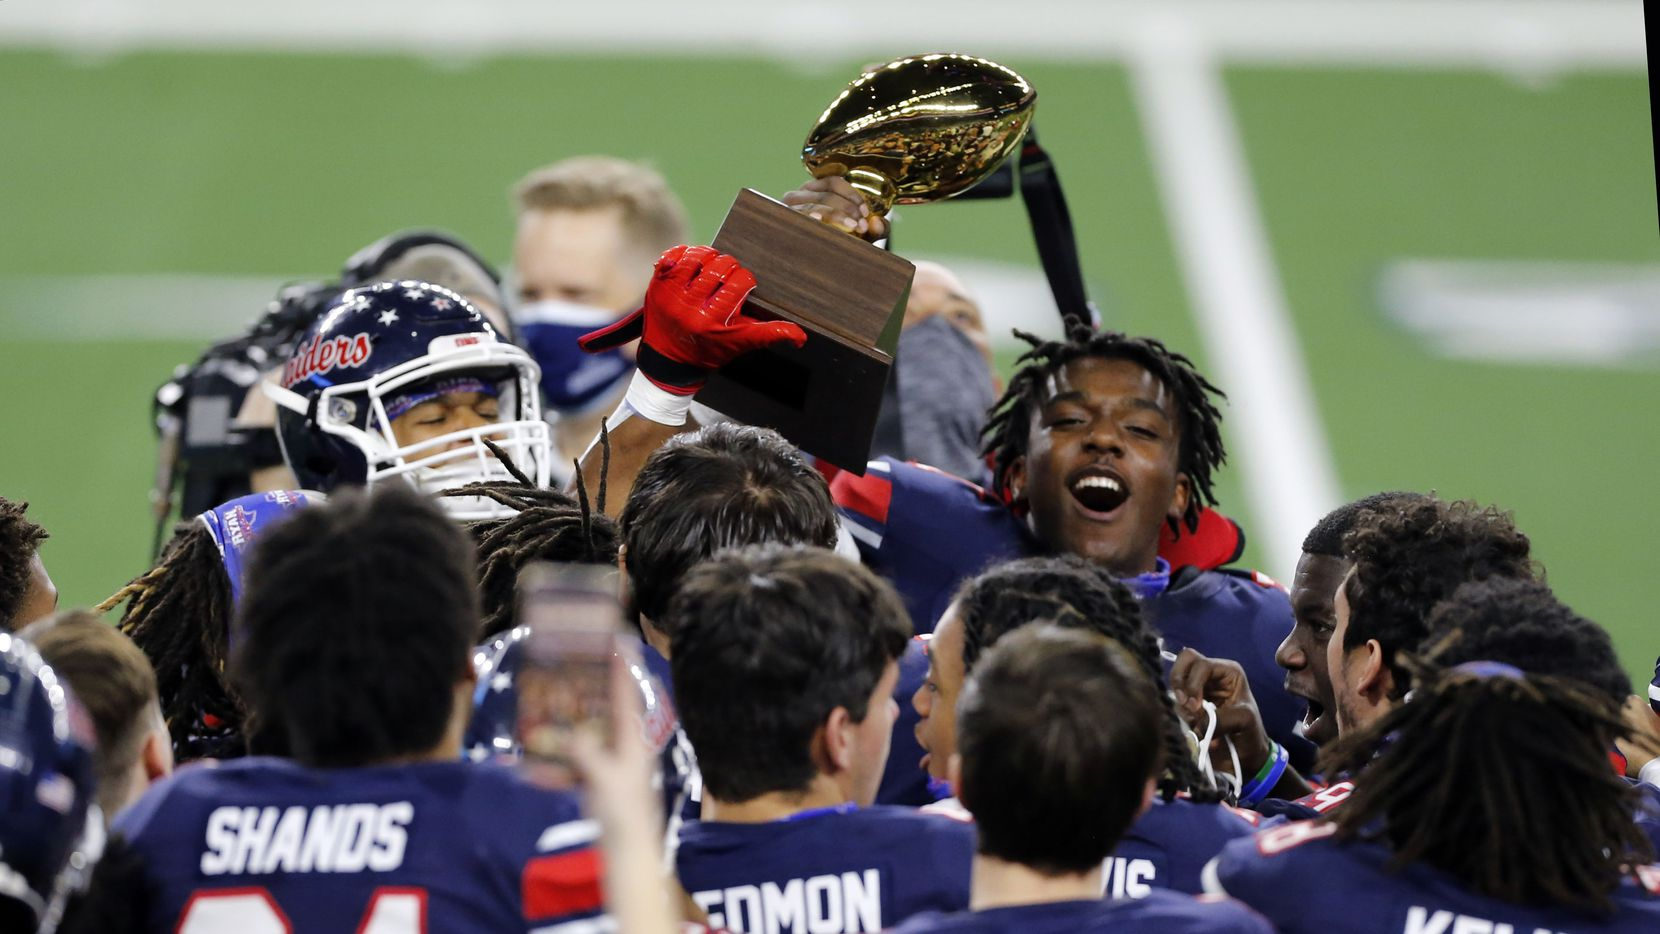 Members of the Denton Ryan football team celebrate with the trophy after winning the Class 5A Division I state semifinal football playoff game against Mansfield Summit High at AT&T Stadium in Arlington on Friday, January 8, 2021. Ryan won 49-35. (John F. Rhodes / Special Contributor)